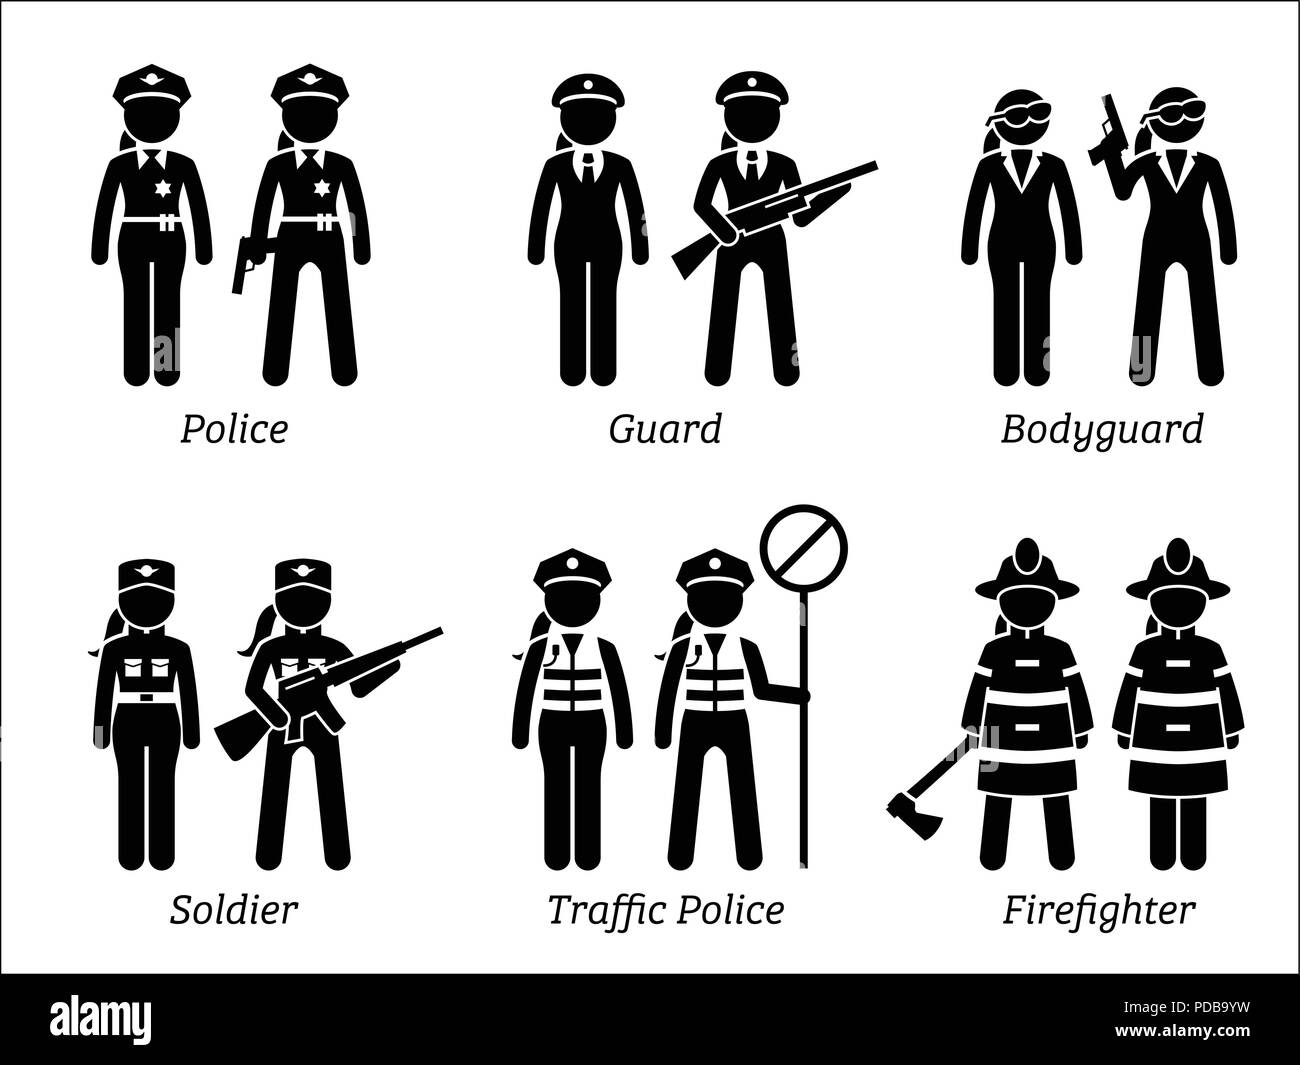 Public Safety Jobs and Occupations for Women. Stock Vector